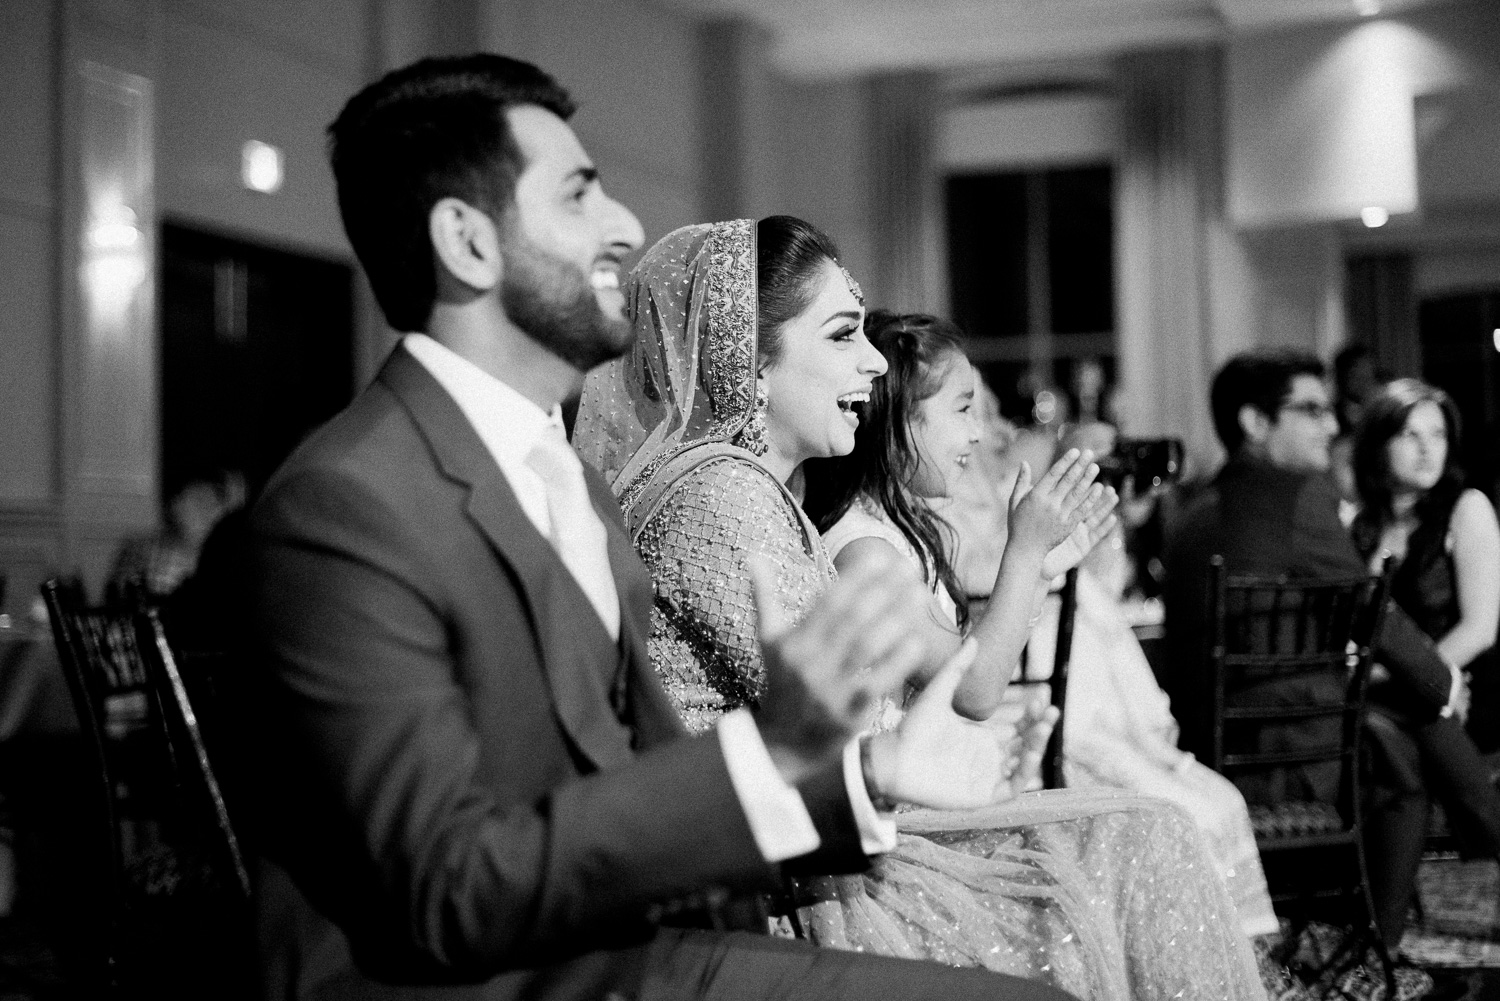 maha_salman_copper_creek_wedding-36.jpg